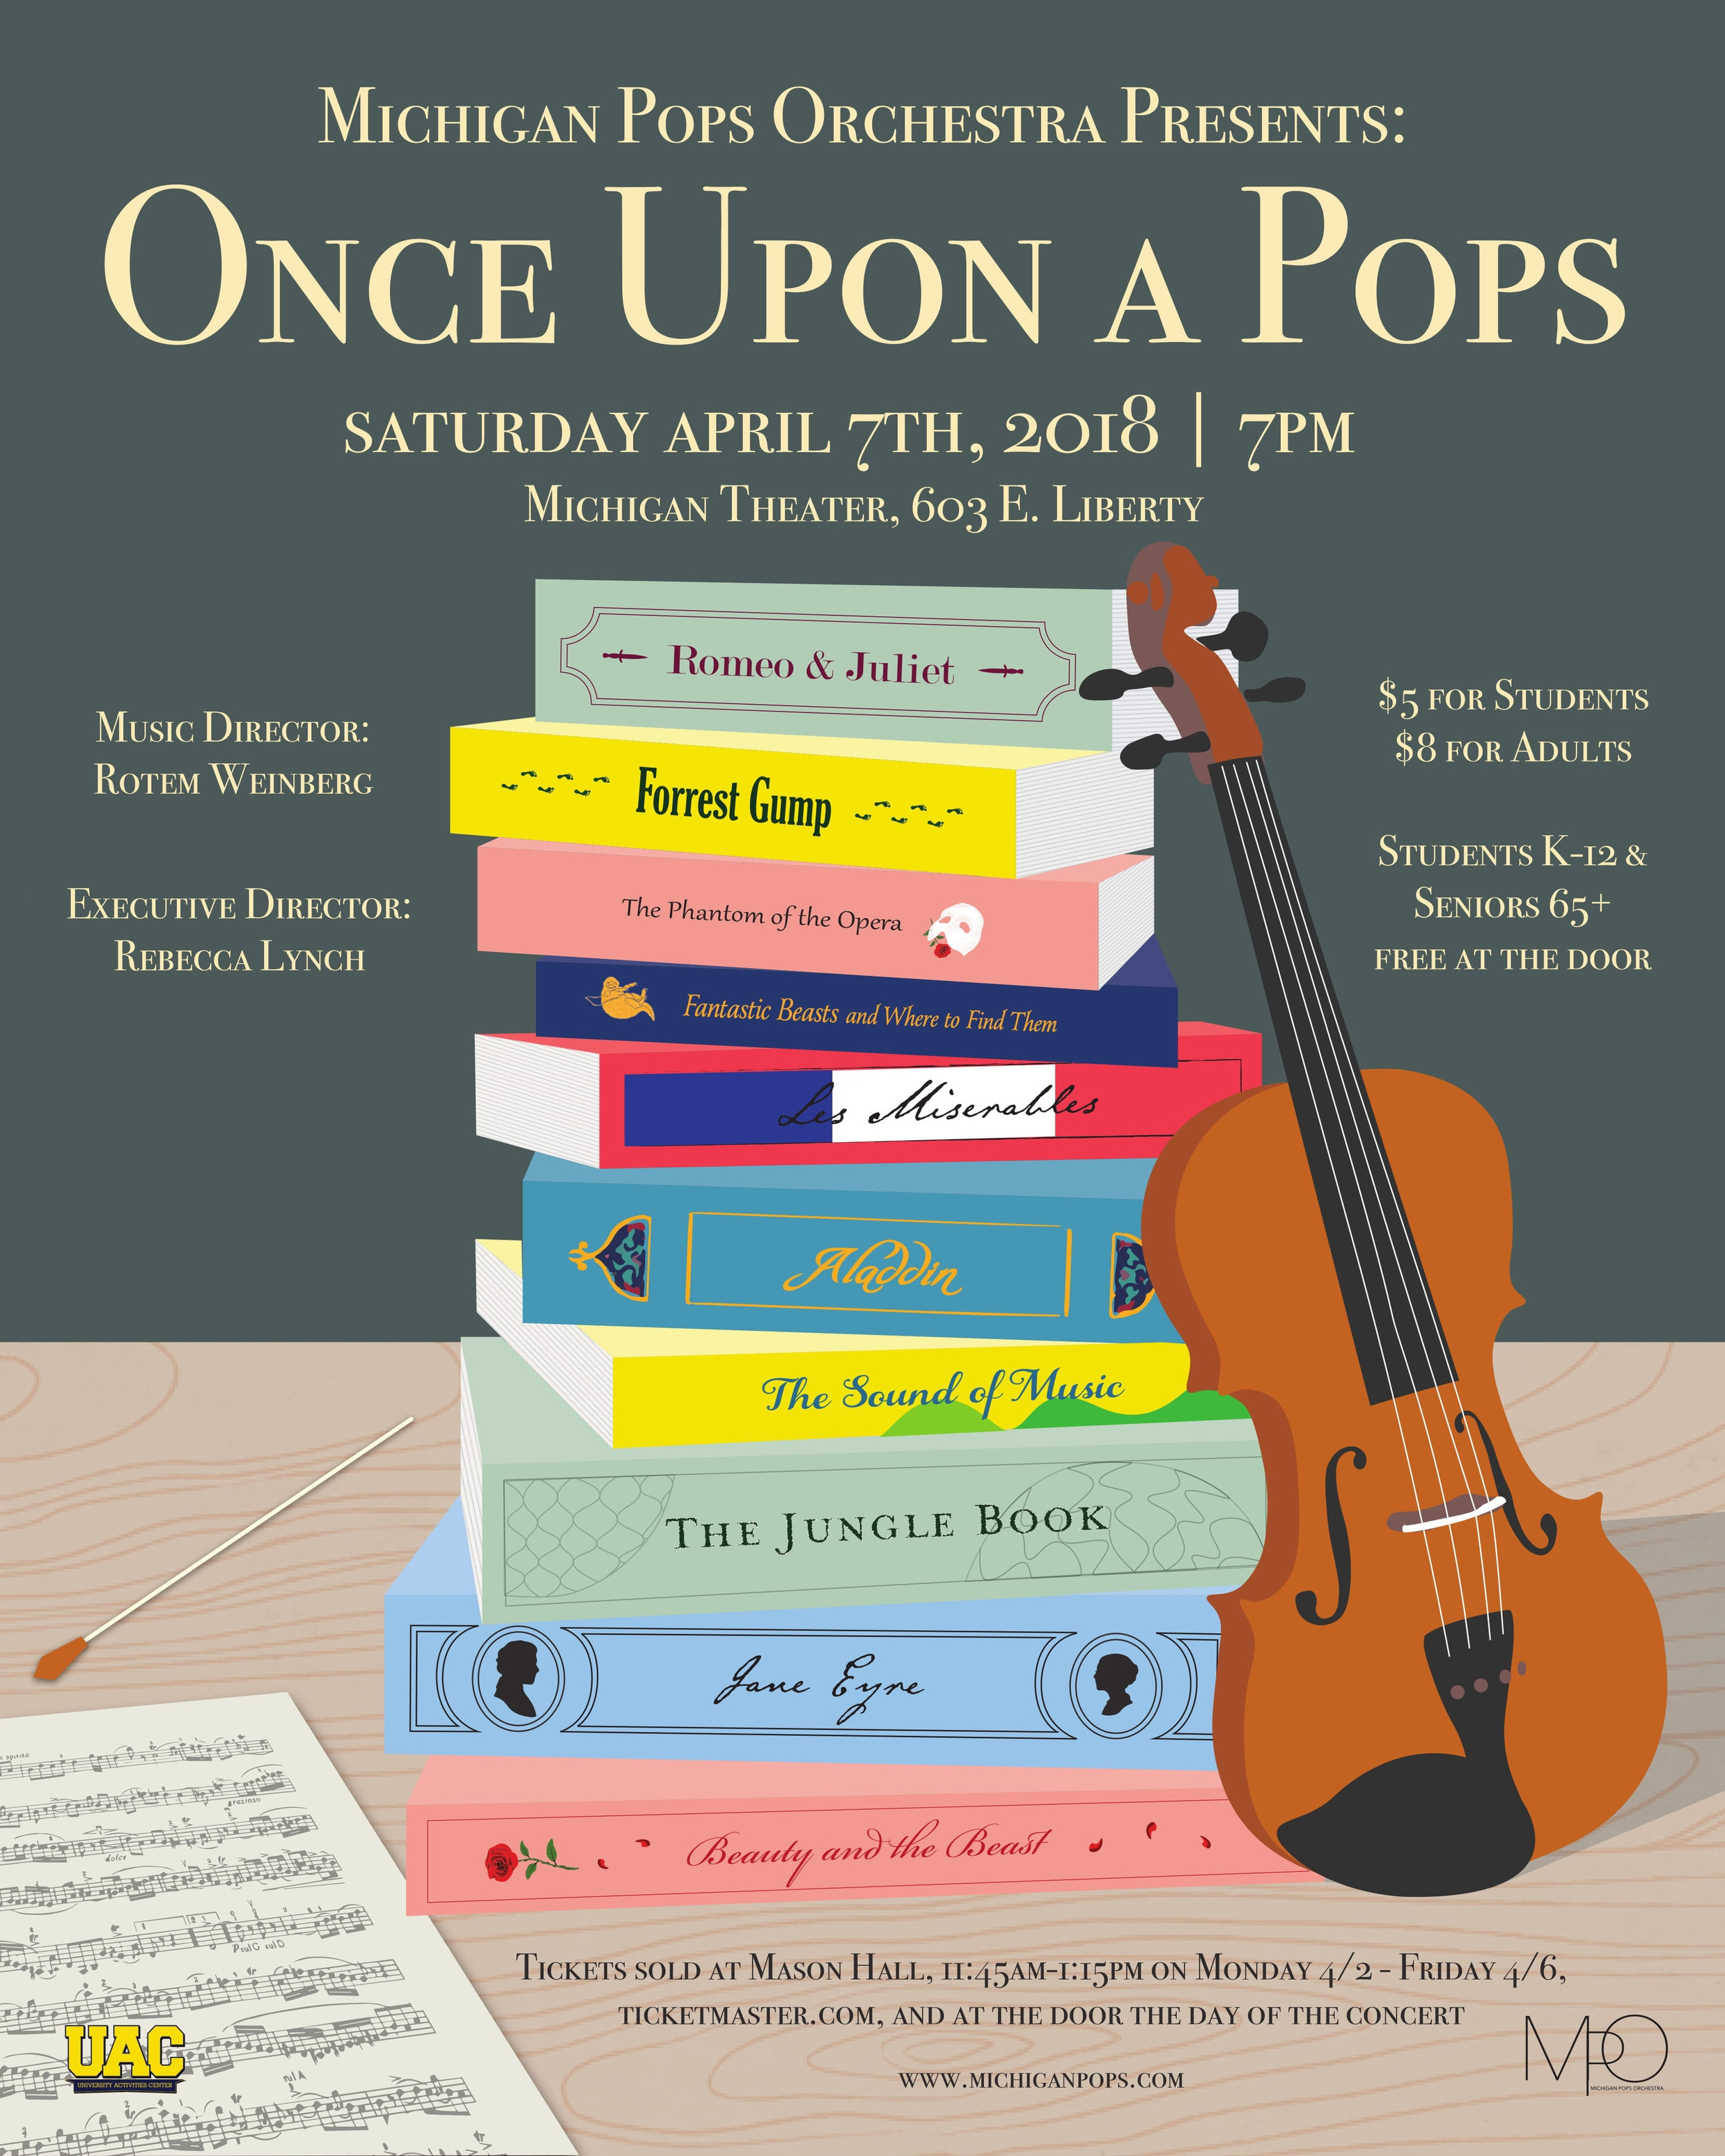 ONCE UPON A POPS  April 7, 2018*